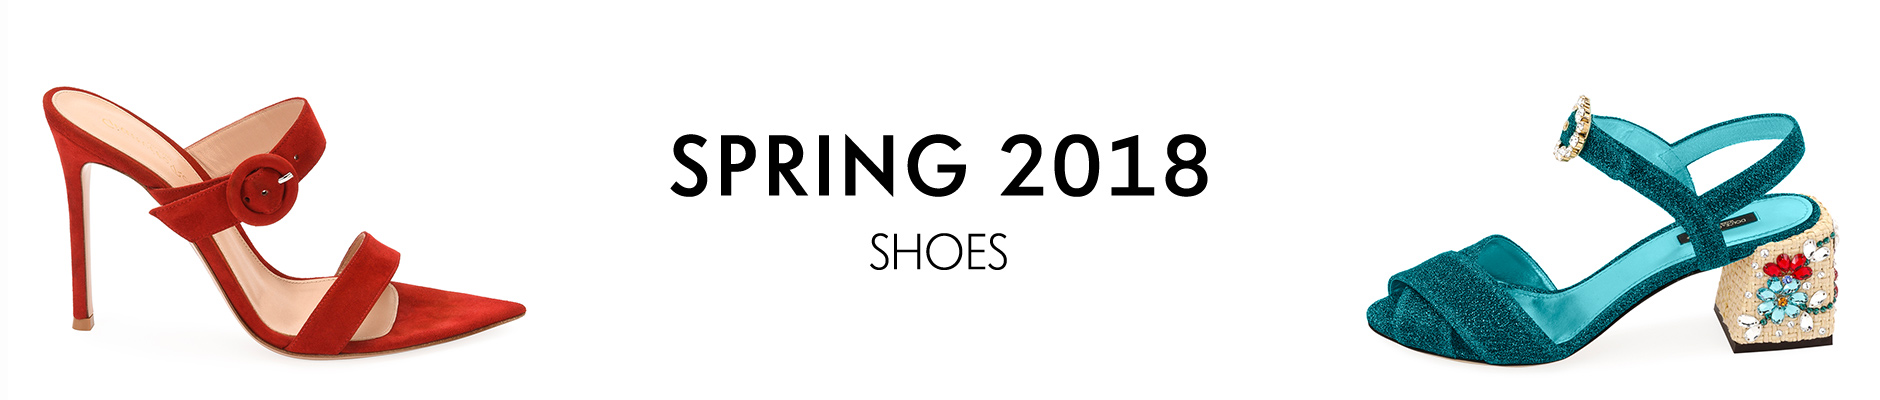 Magazine: Shoes - Spring Launch